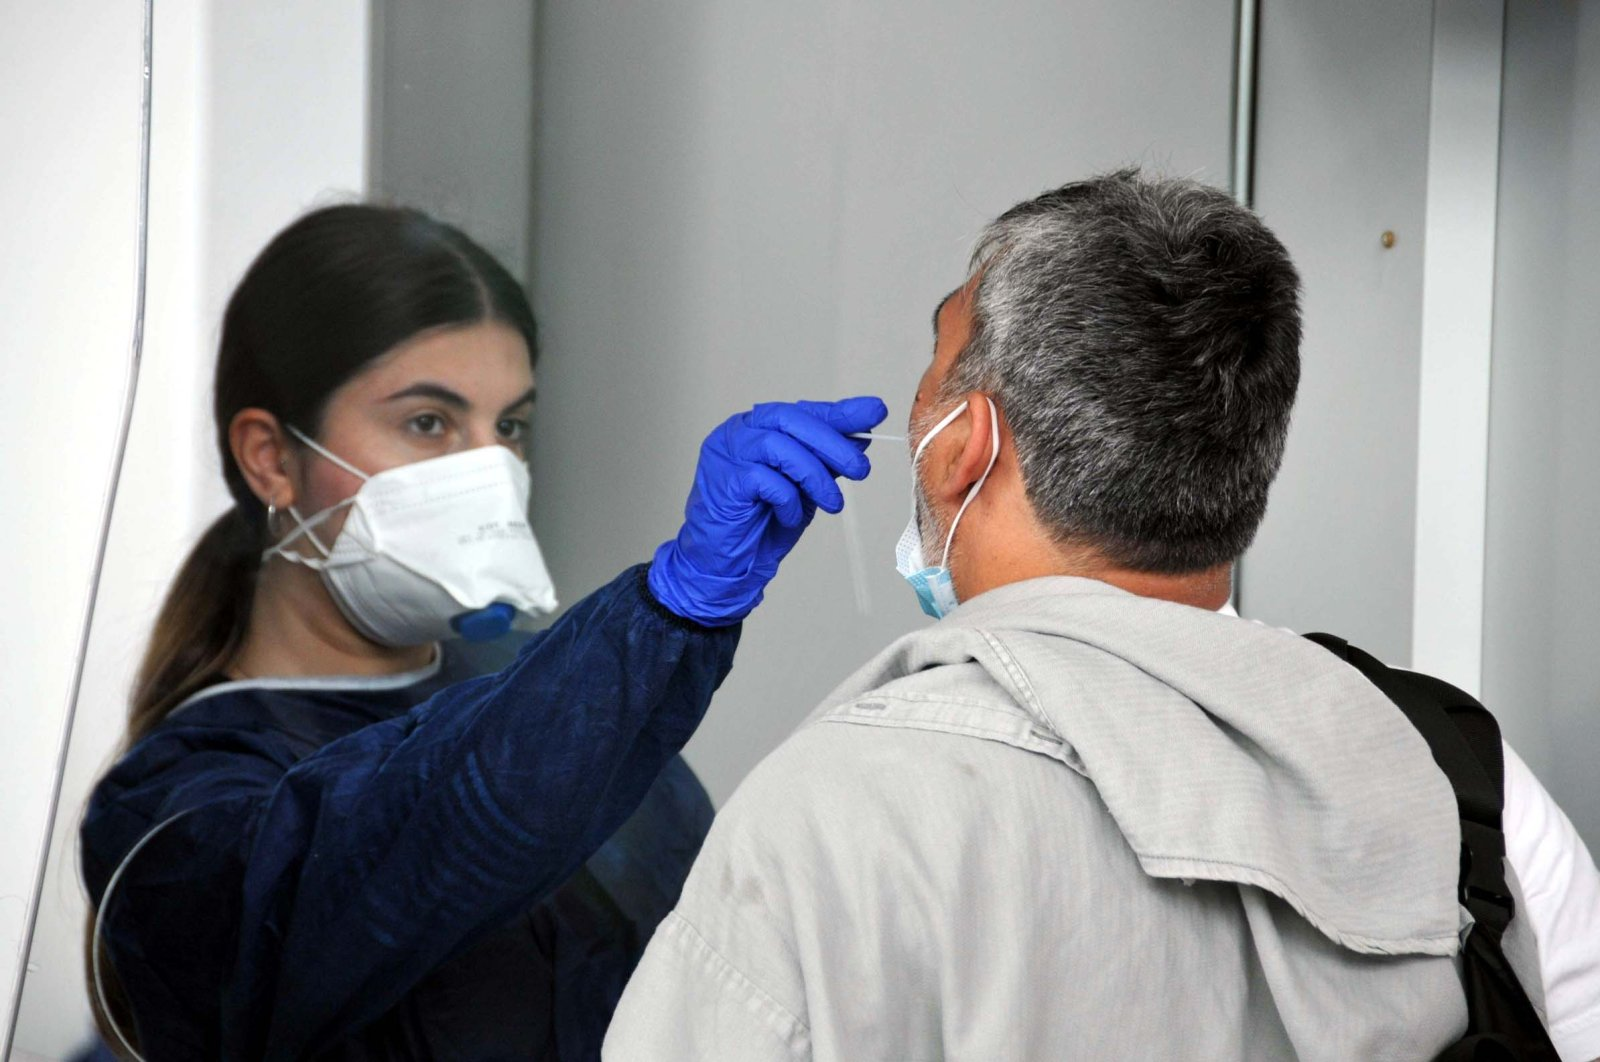 A passenger is tested for the coronavirus at Istanbul Airport, Istanbul, Turkey, June 1, 2021. (DHA PHOTO)